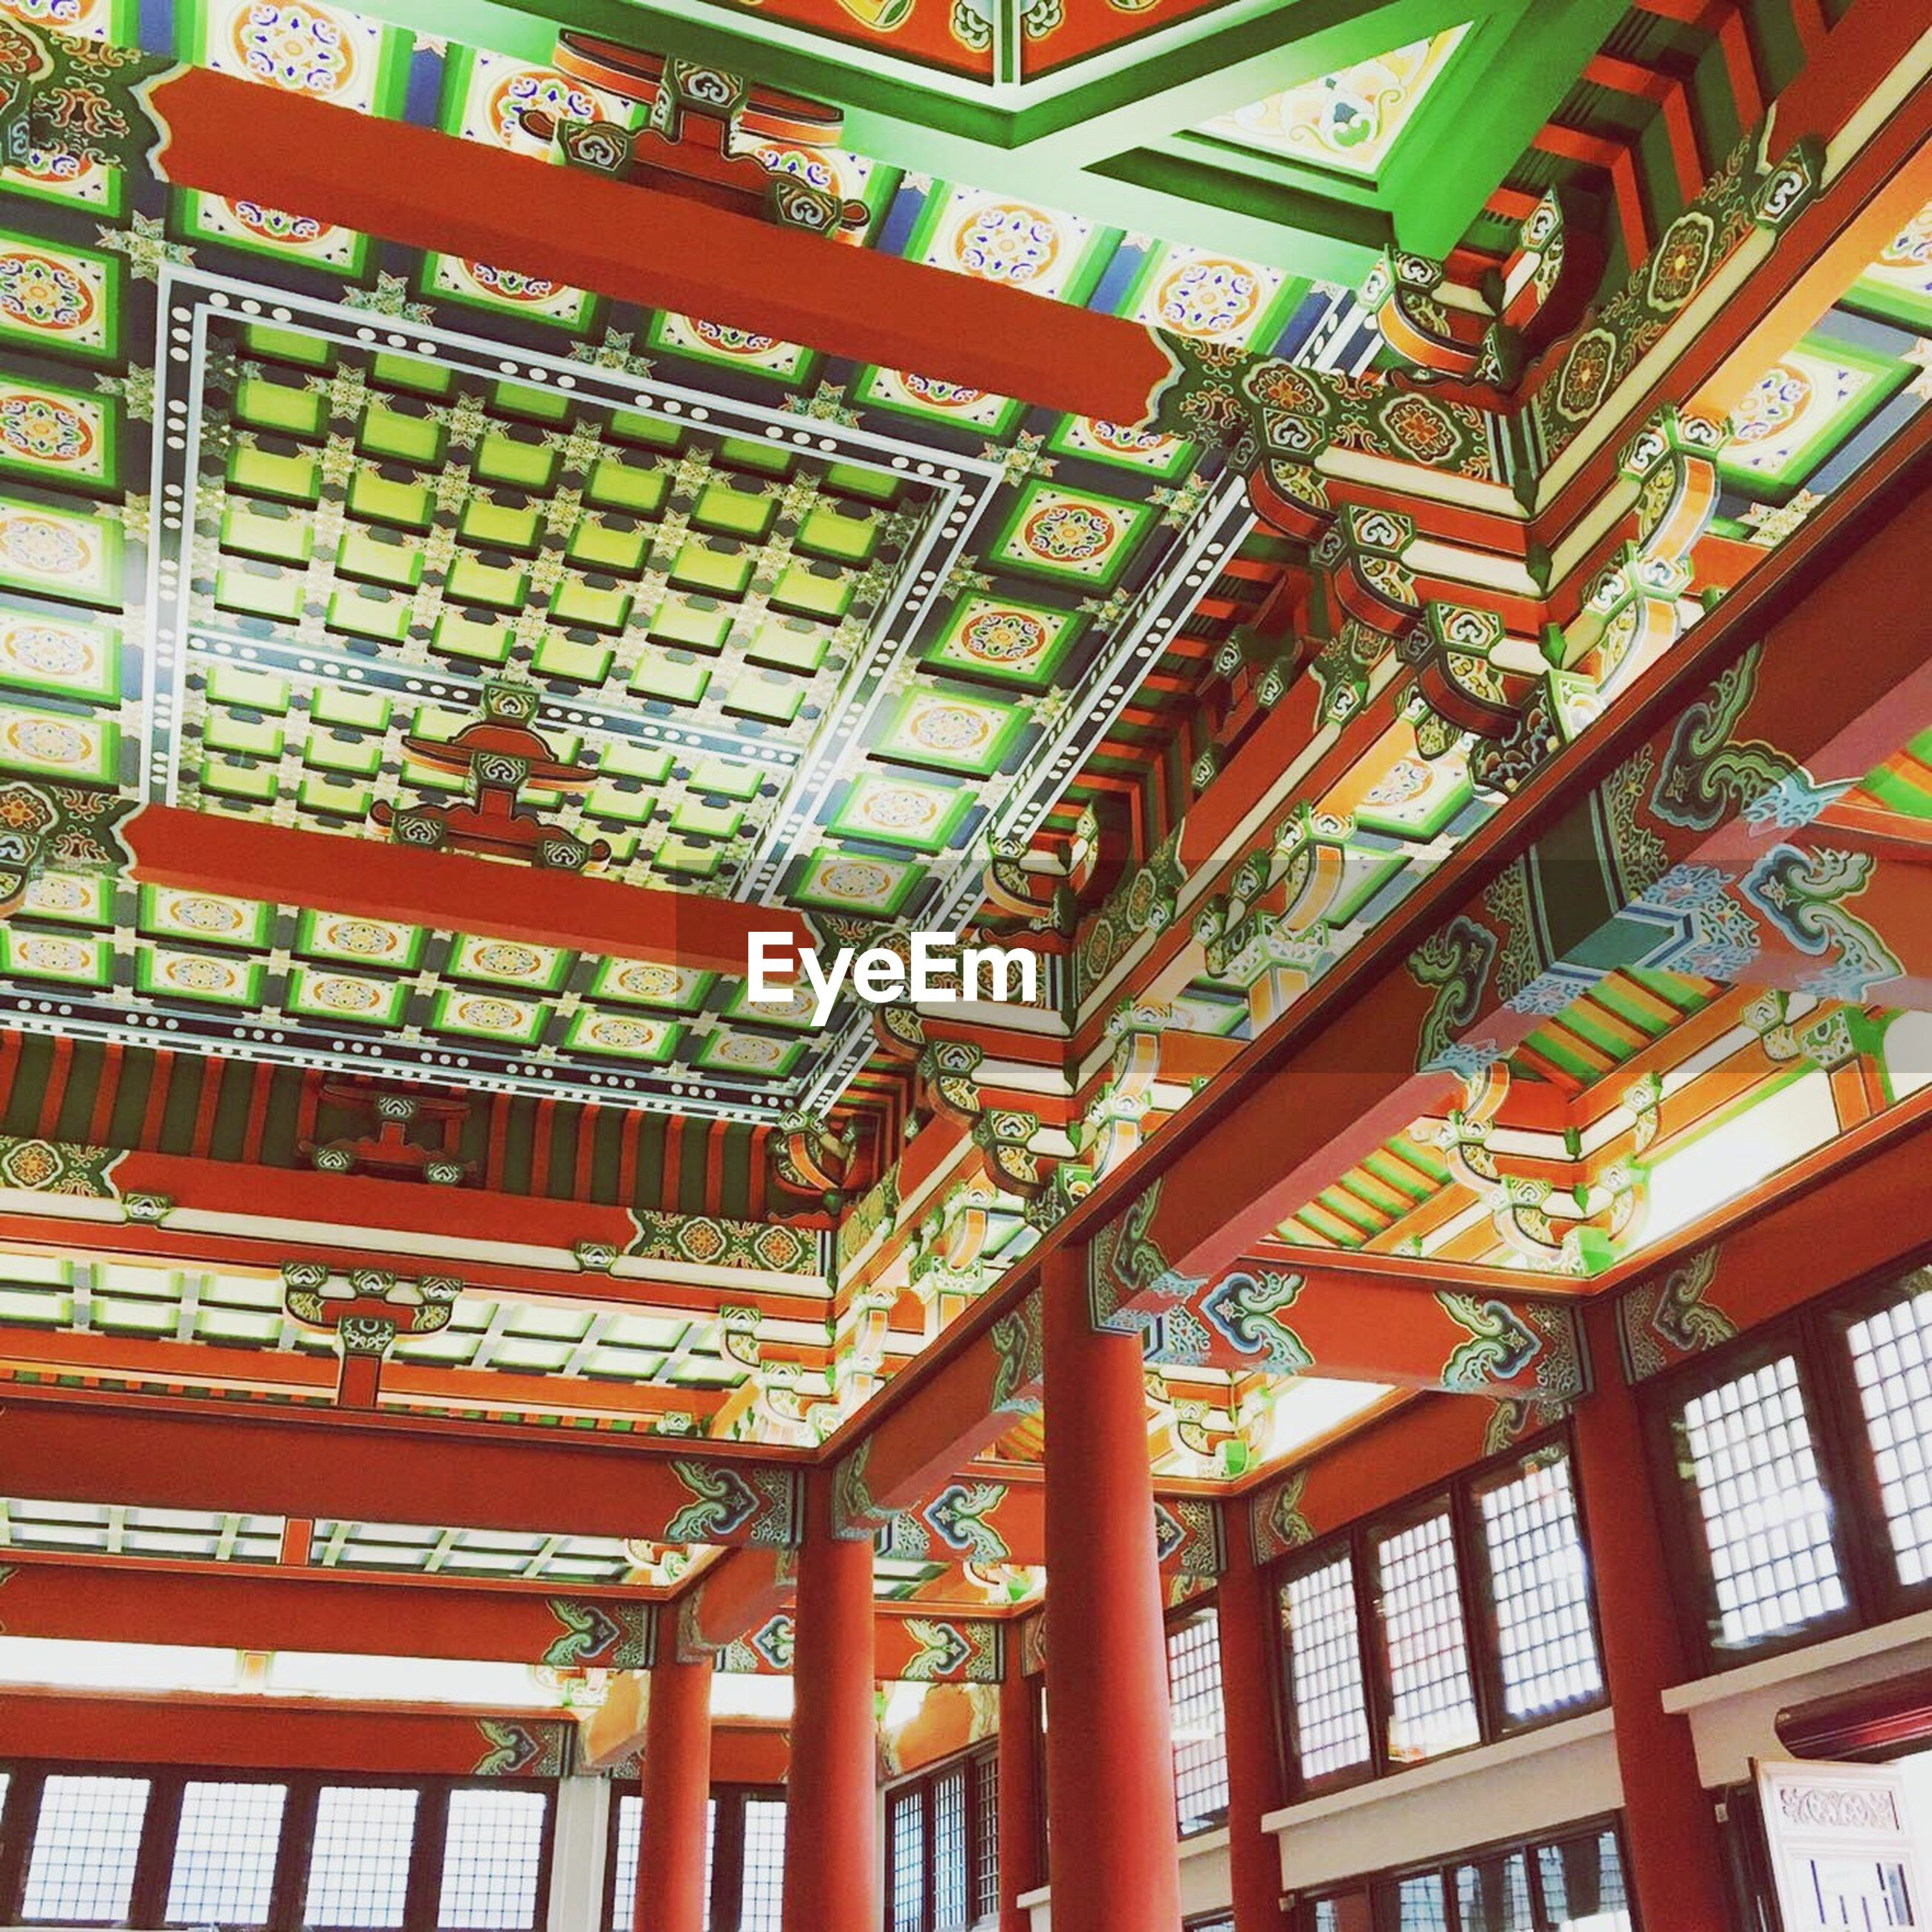 low angle view, ceiling, architecture, culture, architectural feature, ornate, place of worship, in a row, temple - building, multi colored, day, repetition, full frame, red, collection